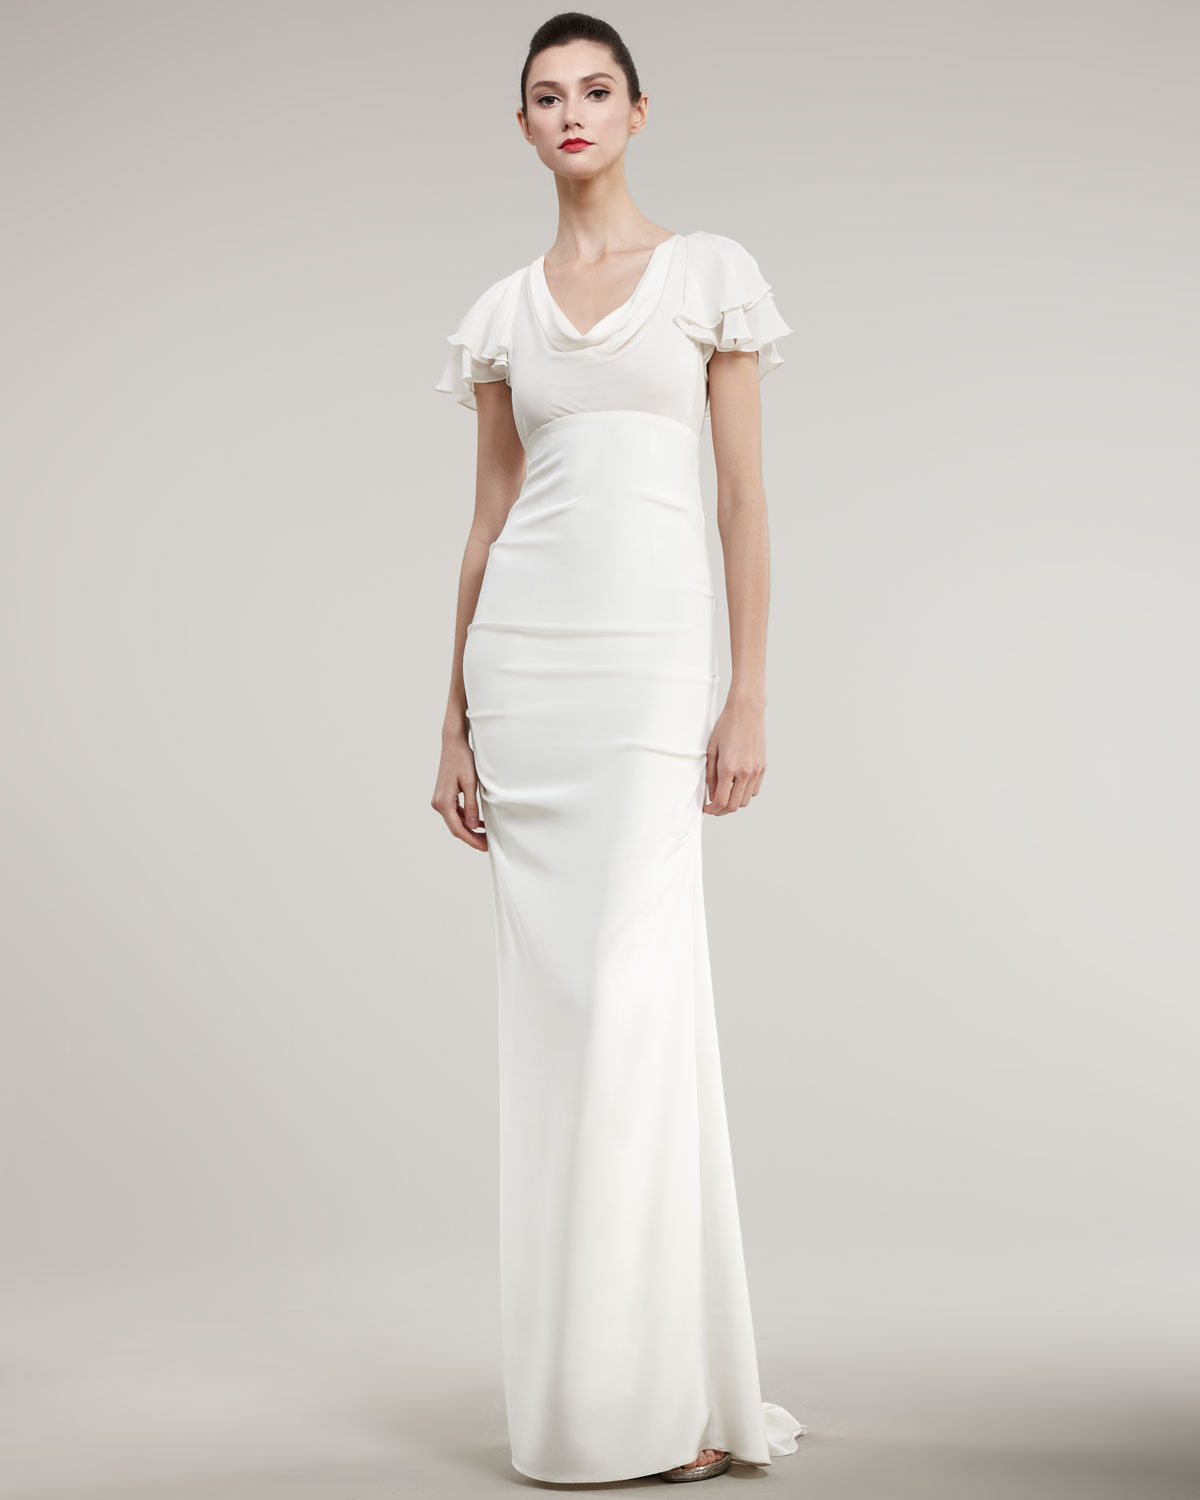 Gallery Nicole Miller Bridal Wedding Dresses: Nicole Miller Flutter-sleeve Fitted Gown In White